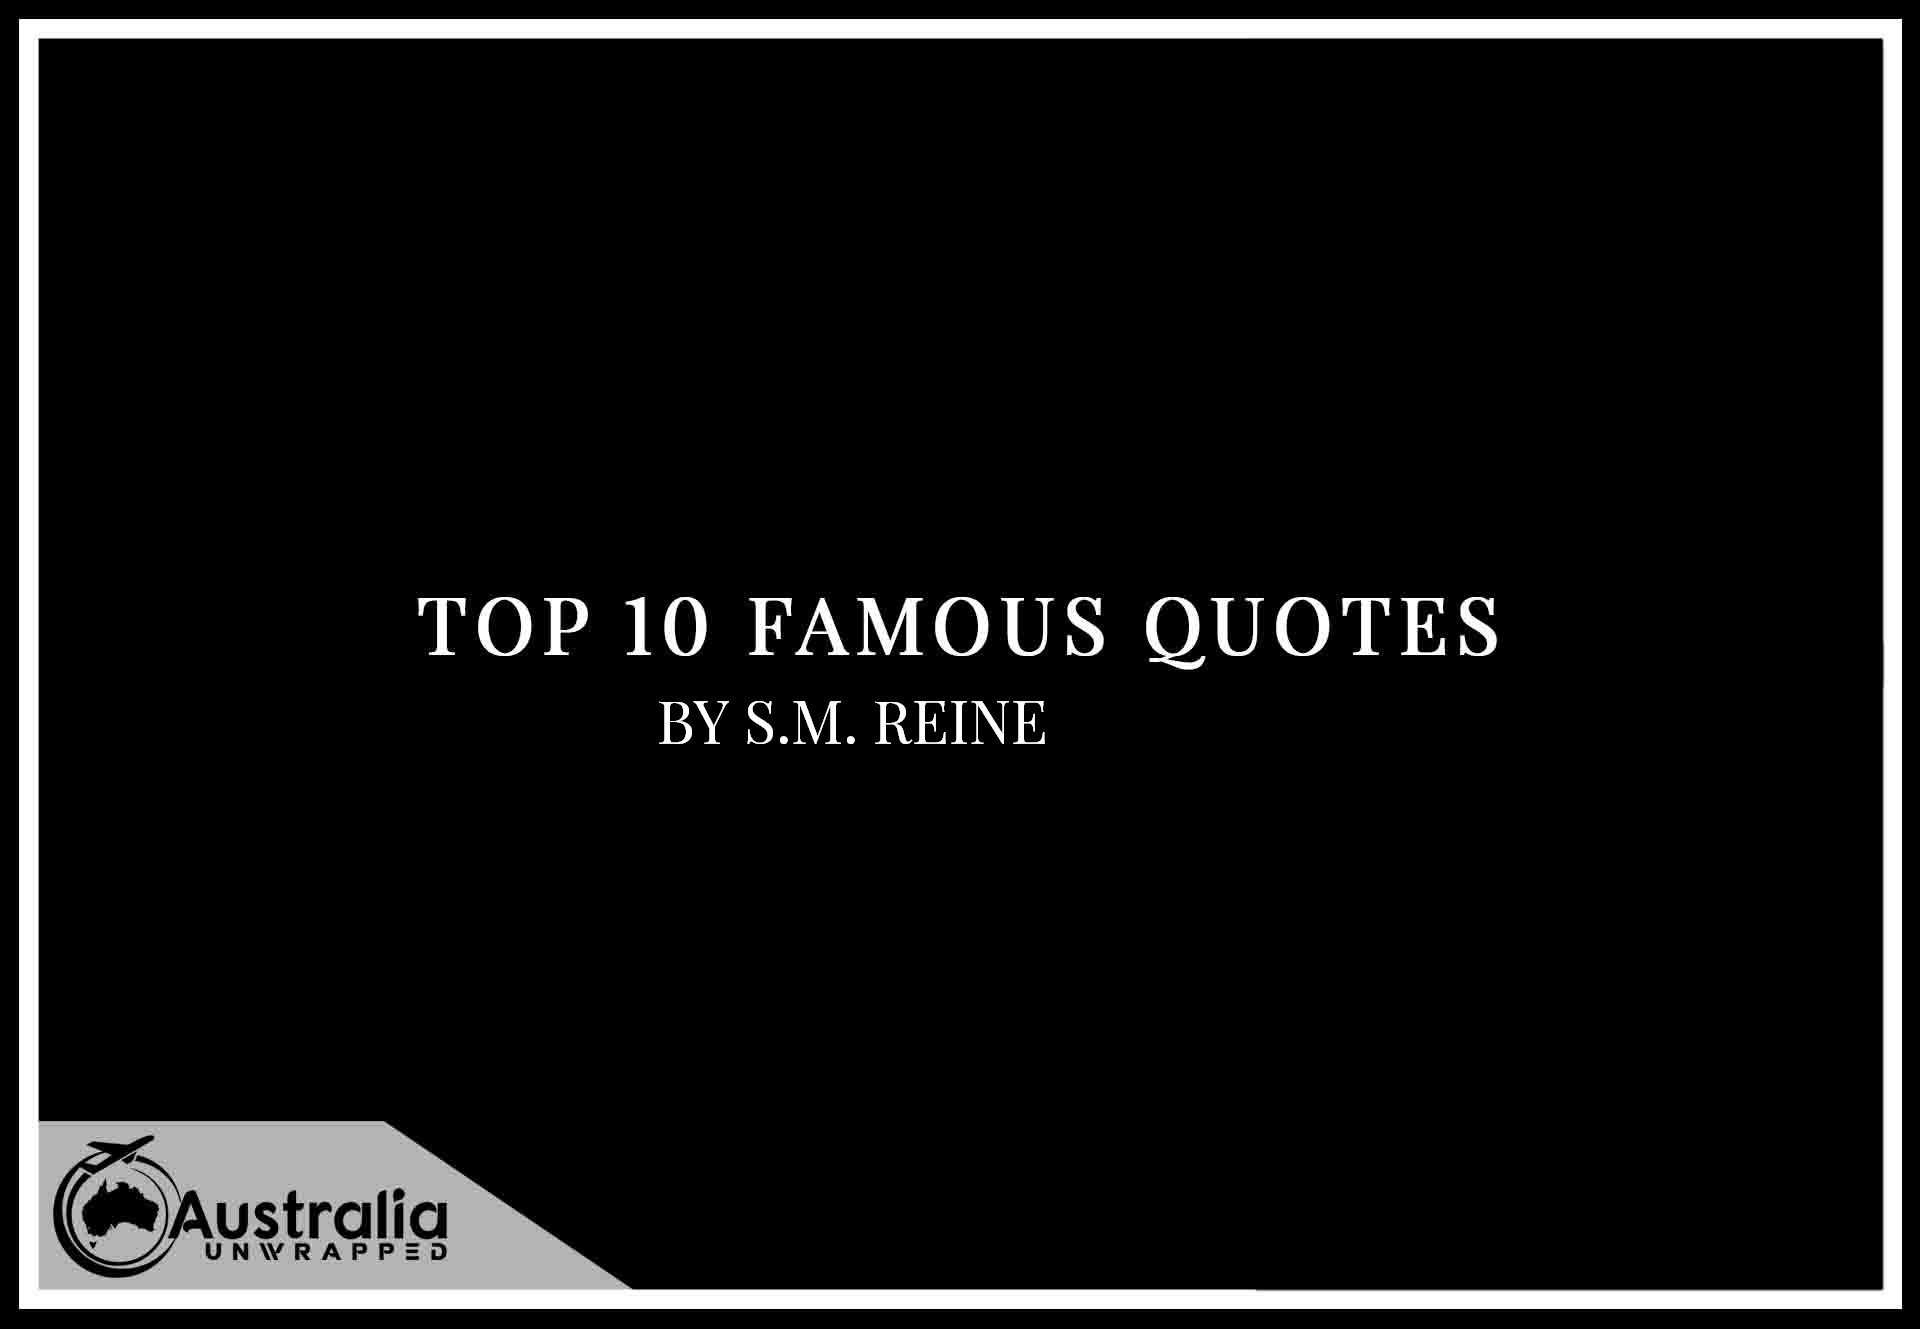 Top 10 Famous Quotes by Author S.M. Reine